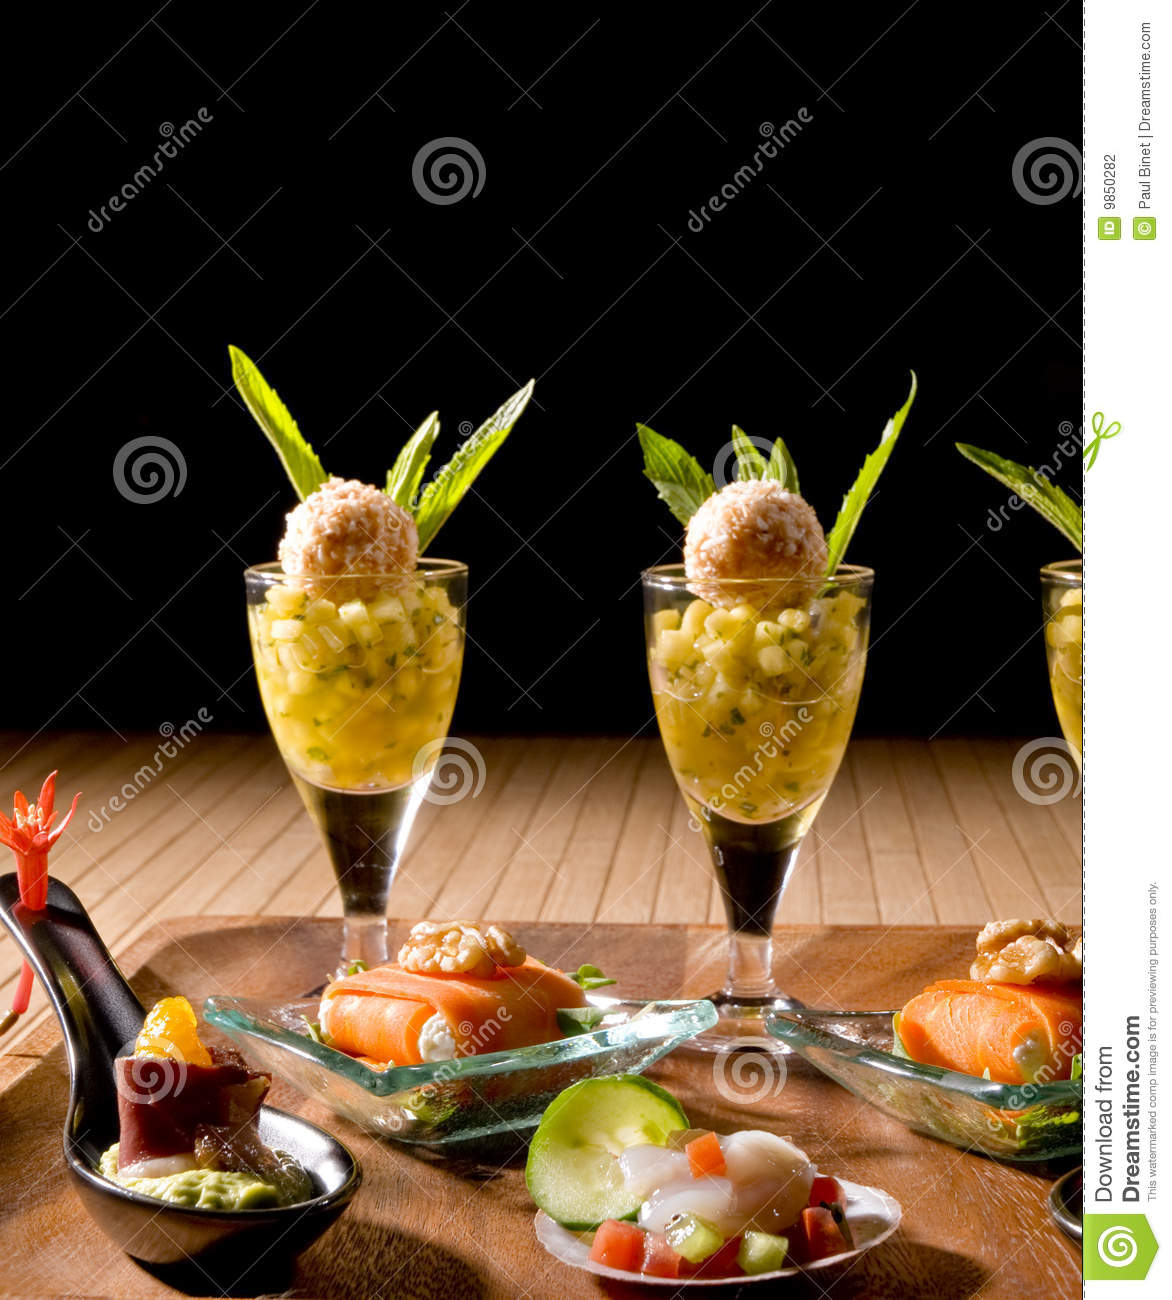 Creative food group a stock photography image 9850282 for Creation cuisine